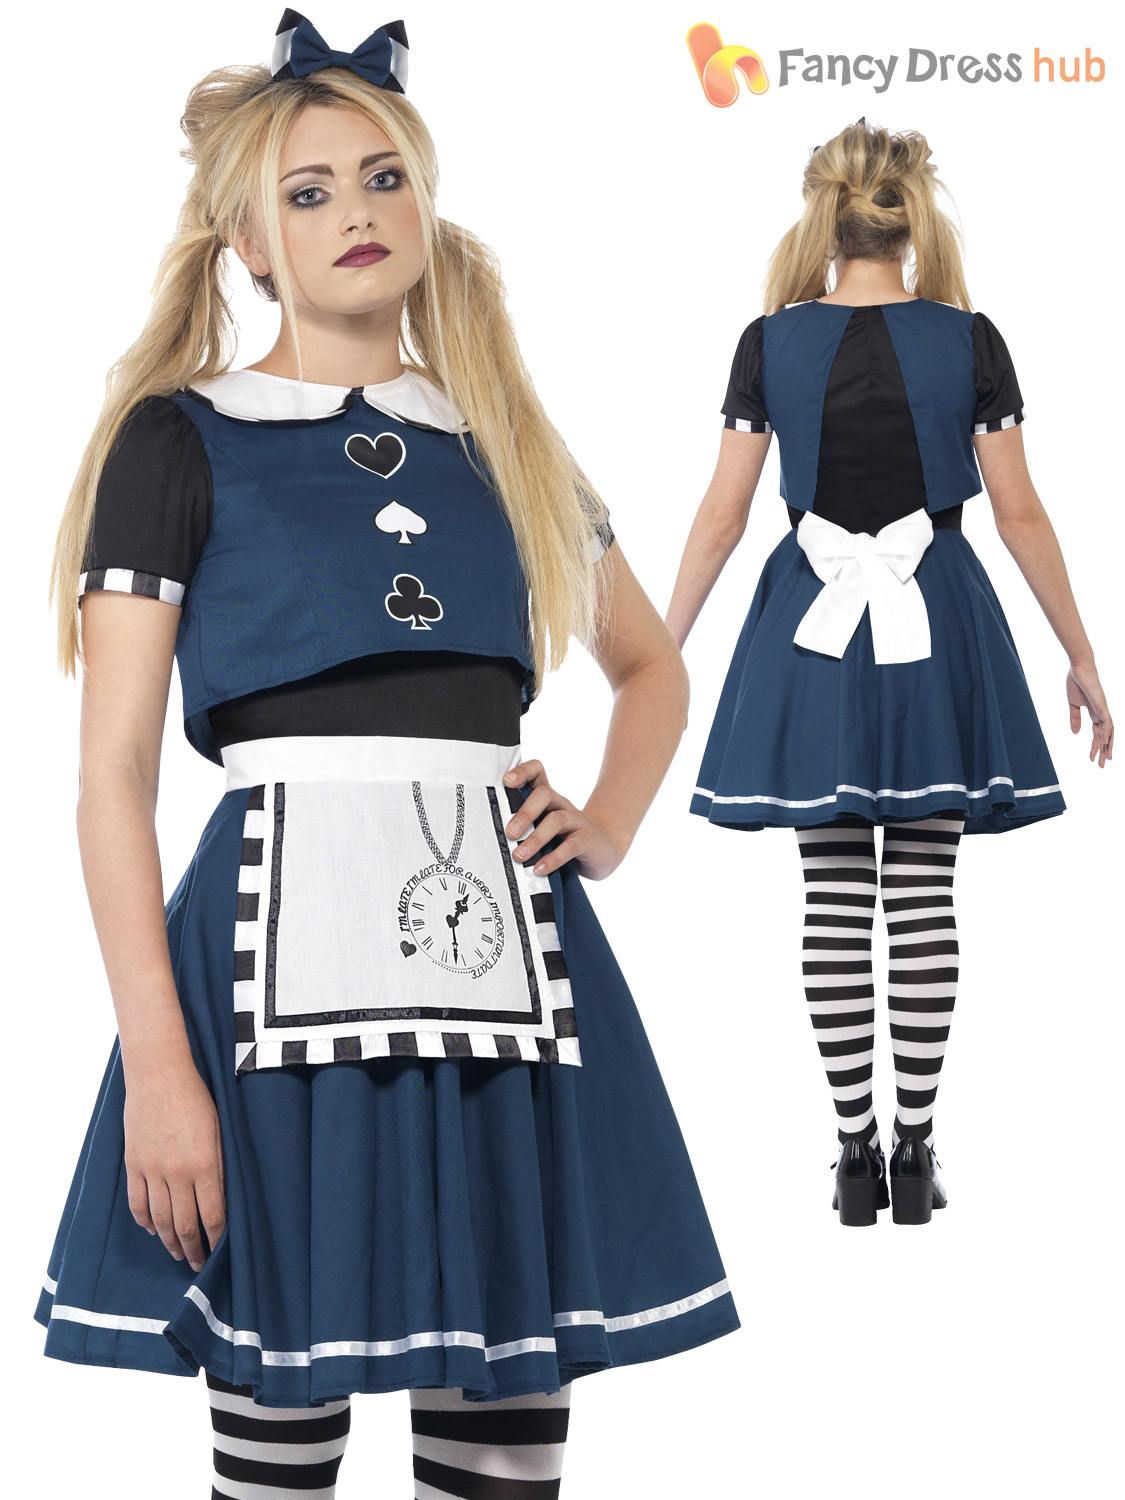 Alice in Wonderland fancy dress Alice in Wonderland Tea Party Ideas Alice and wonderland costumes Alice in wonderland croquet Alice in Wonderland accessories Alice - Tea Party Alice in wonderland birthday Alice in wonderland musical Alice in Wonderland decorations Queen Of Hearts Fantasy Party Ideas Aniversario Casino Party Wonderland Princess.